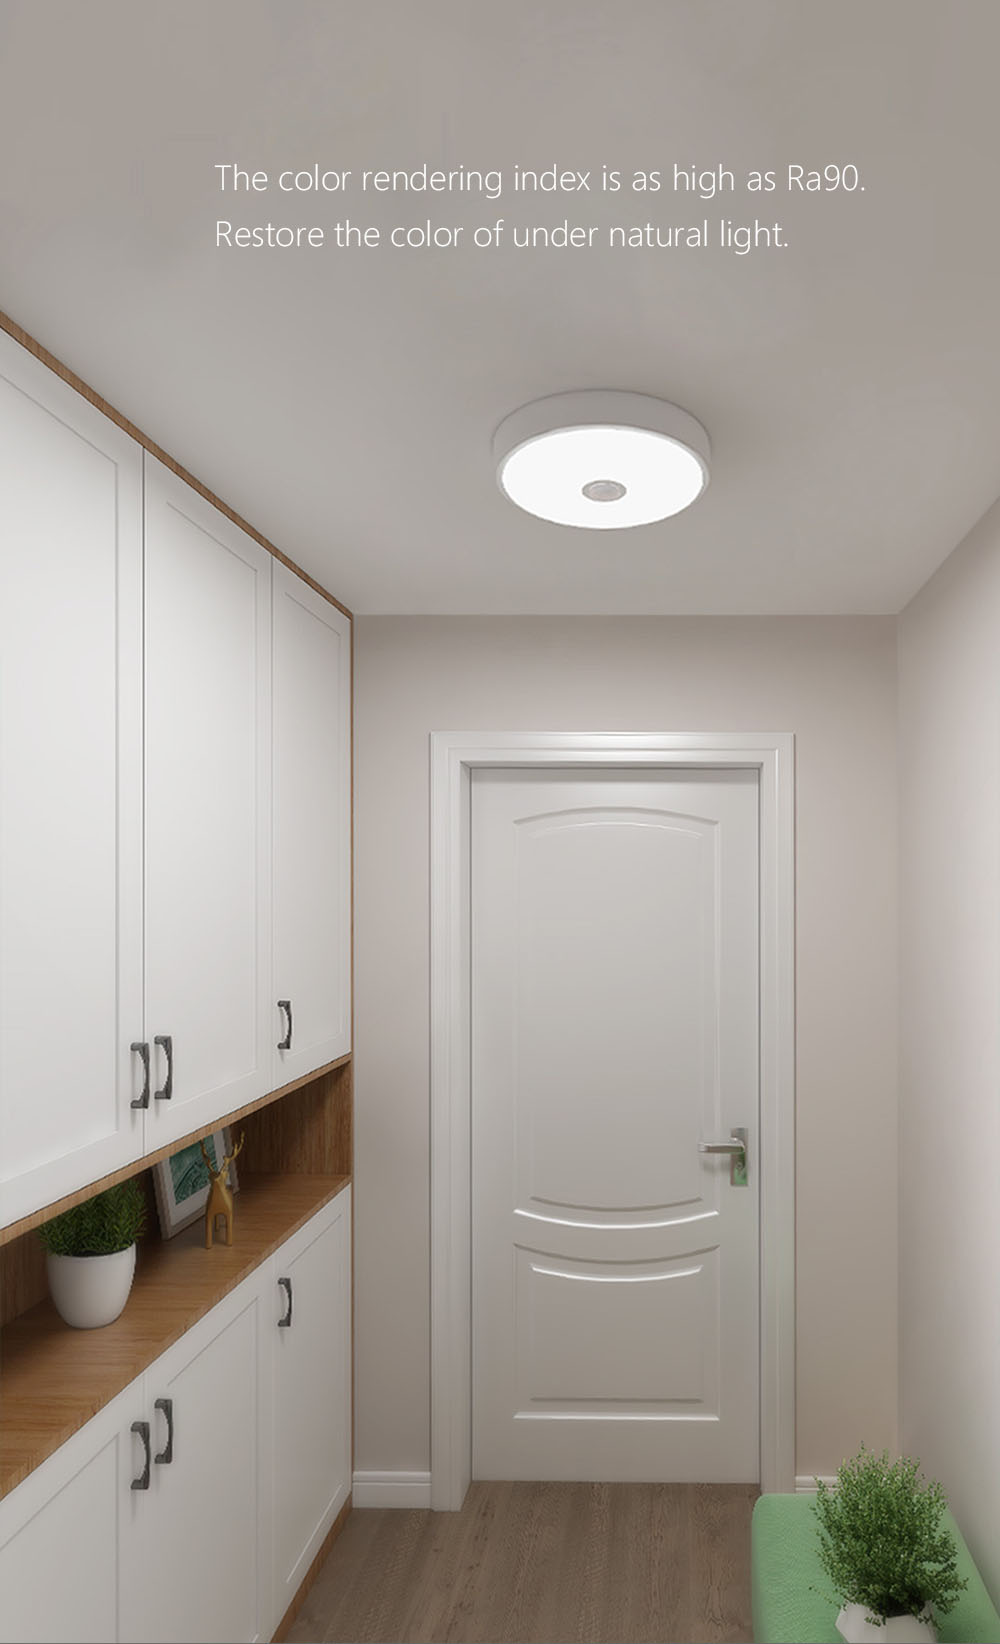 Xiaomi Yeelight YLXD09YL 10W Human Body Motion Sensor LED Ceiling Light Porch Corridor AC220-240V